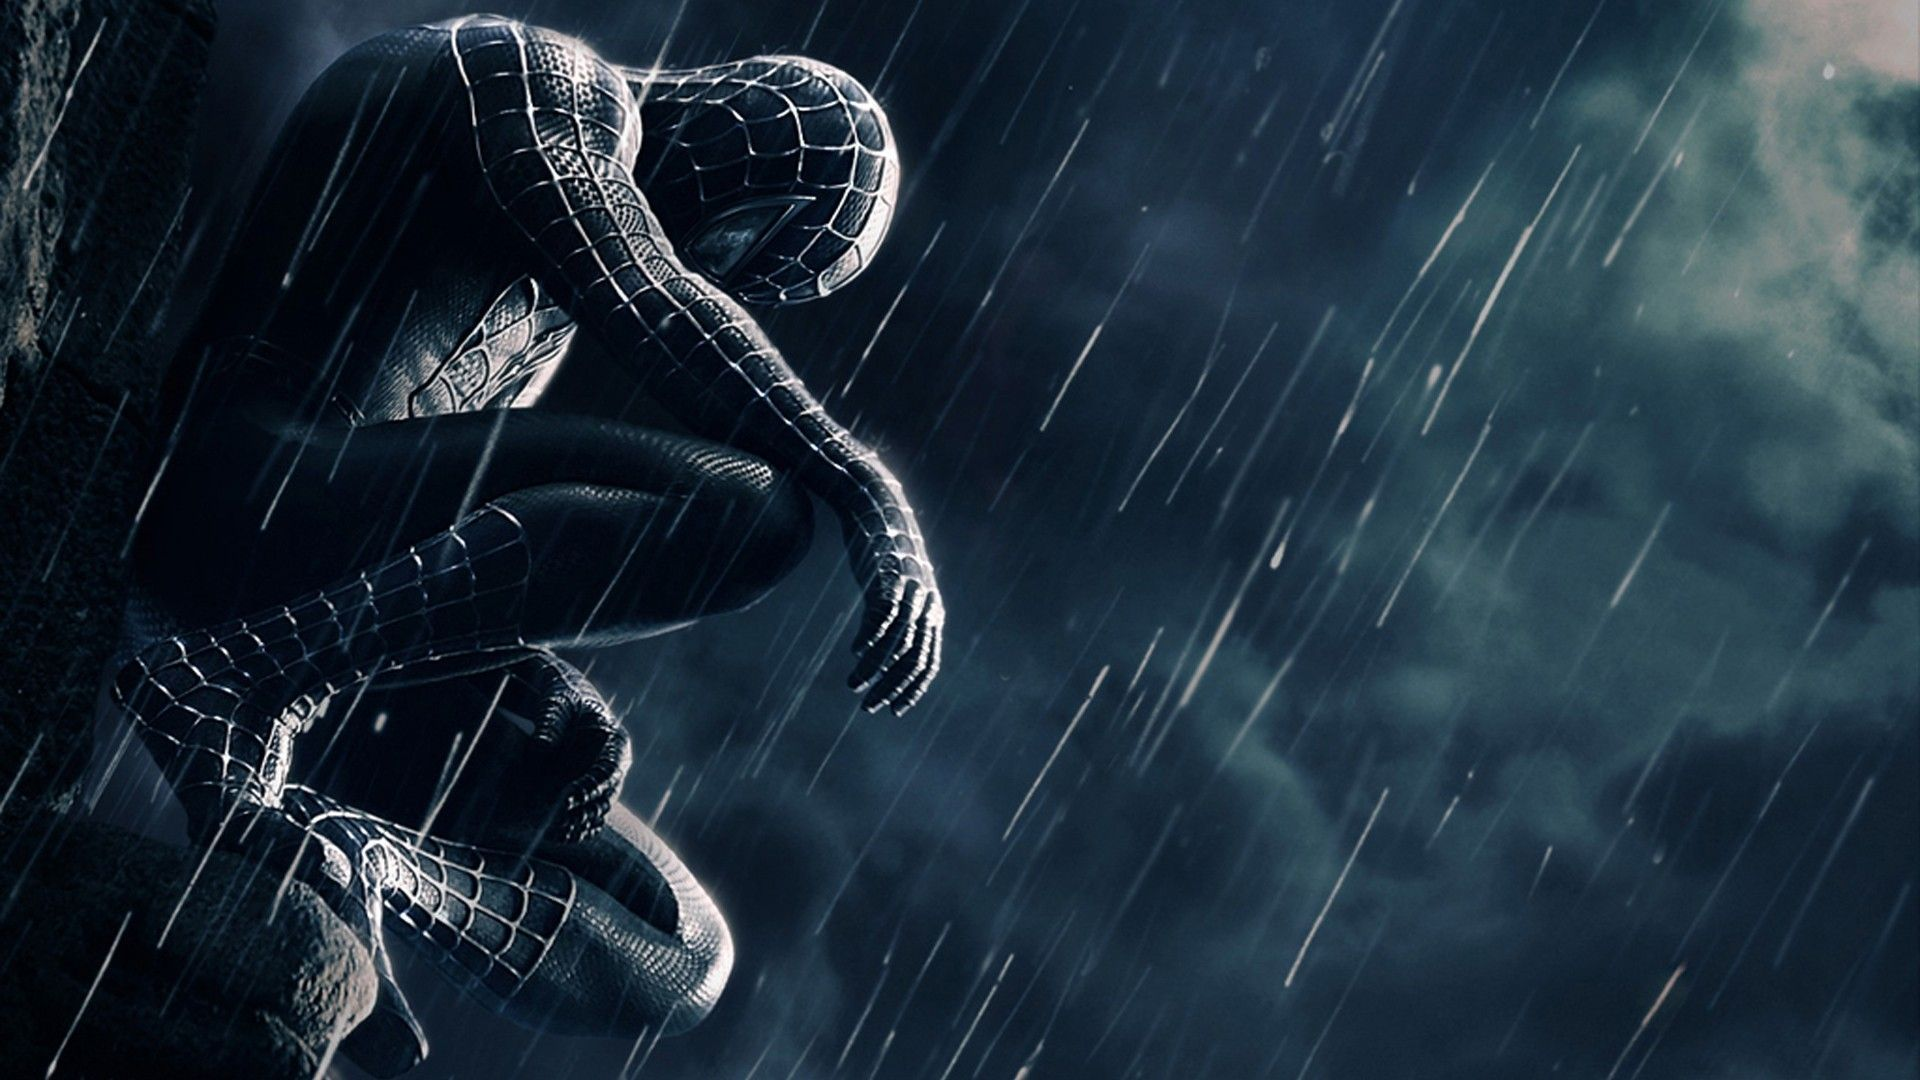 Hd wallpaper spiderman - Find This Pin And More On Hd Wallpapers